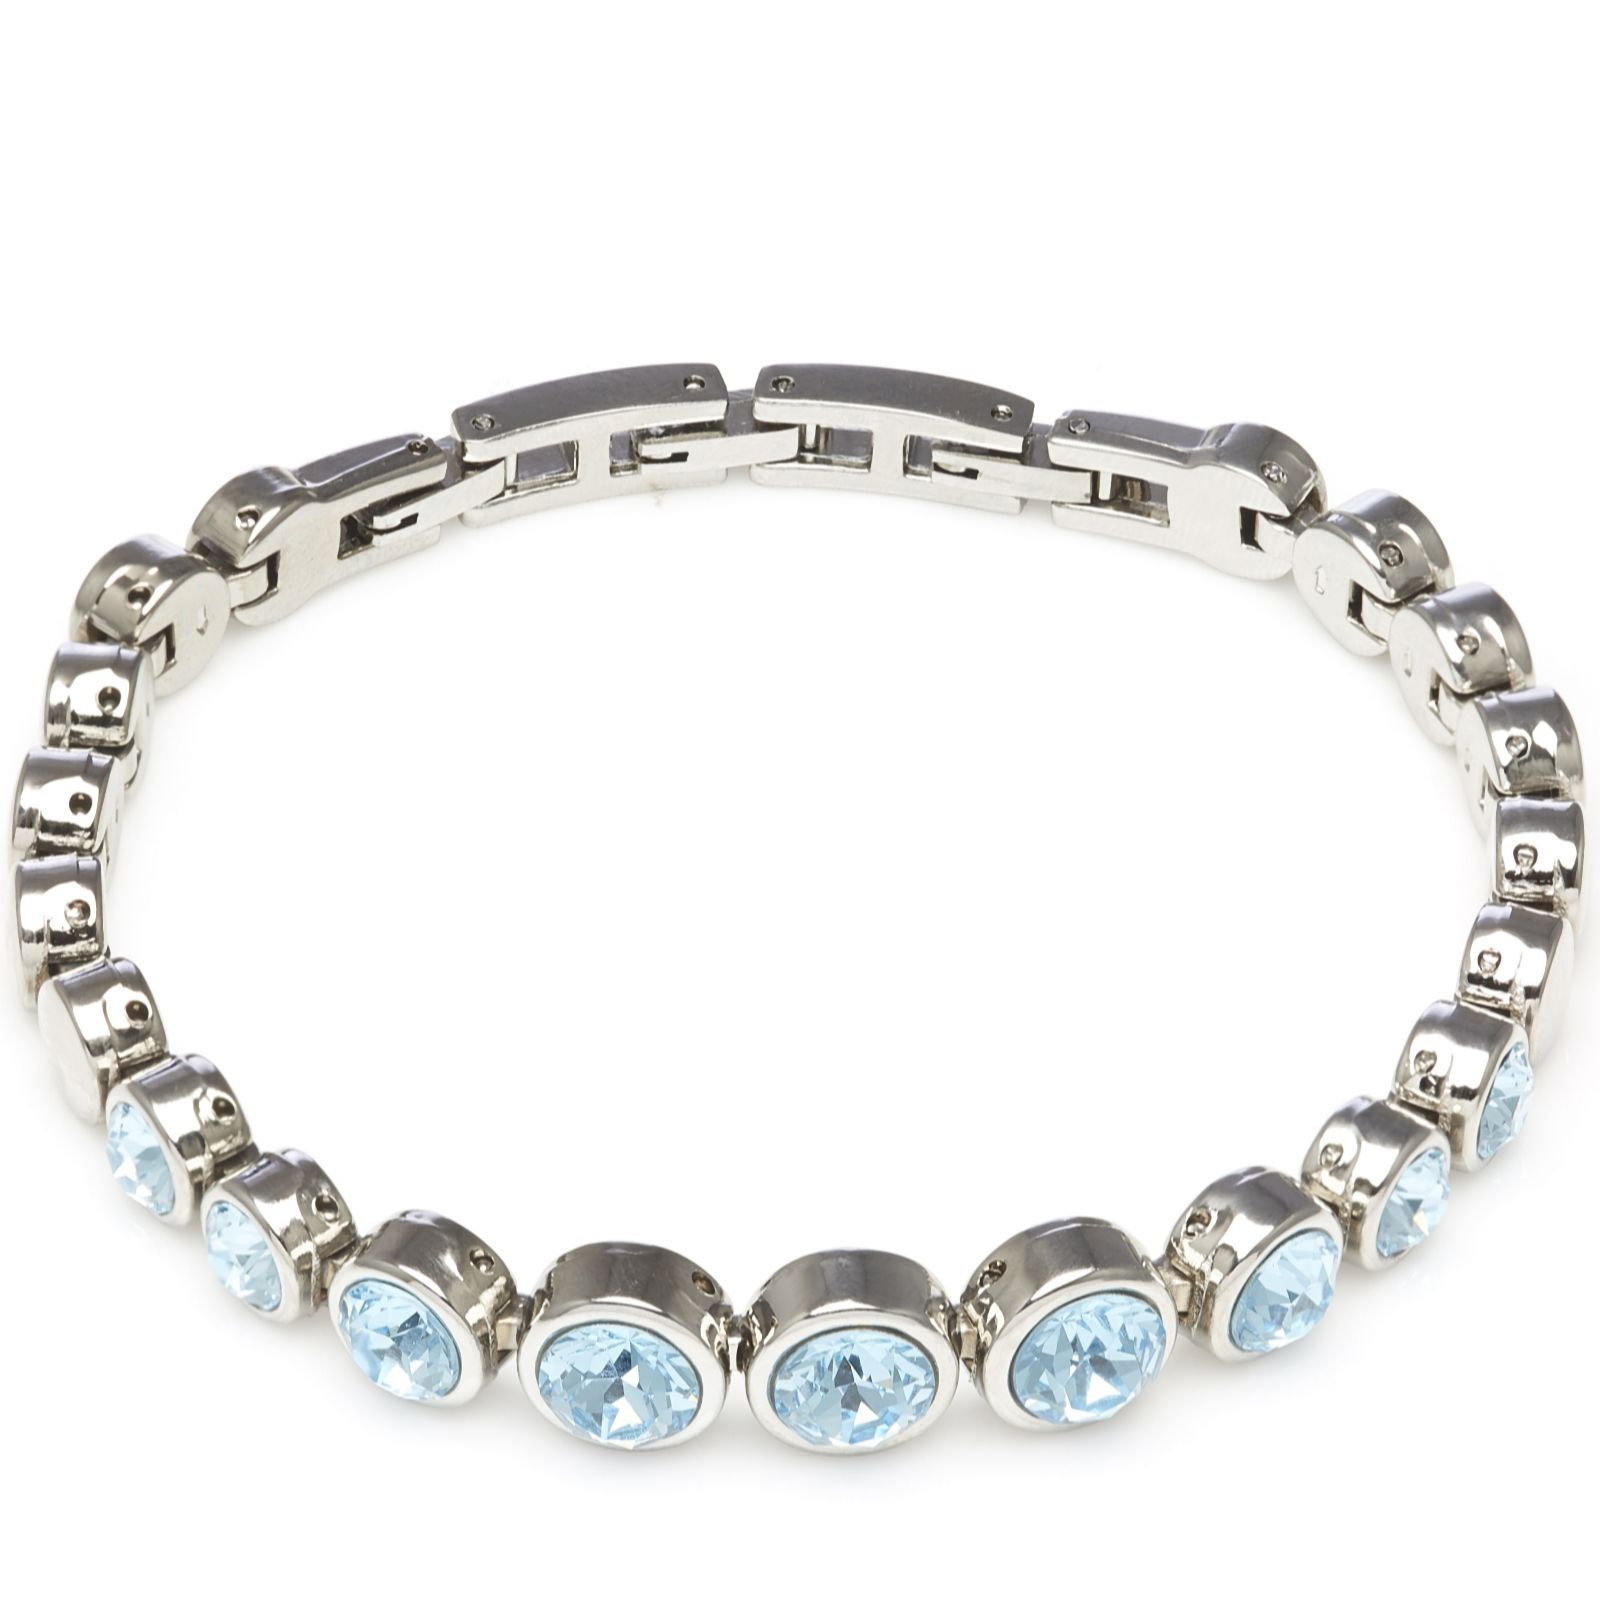 Aurora Swarovski Crystal Tennis Bracelet With Adjule Links 312457